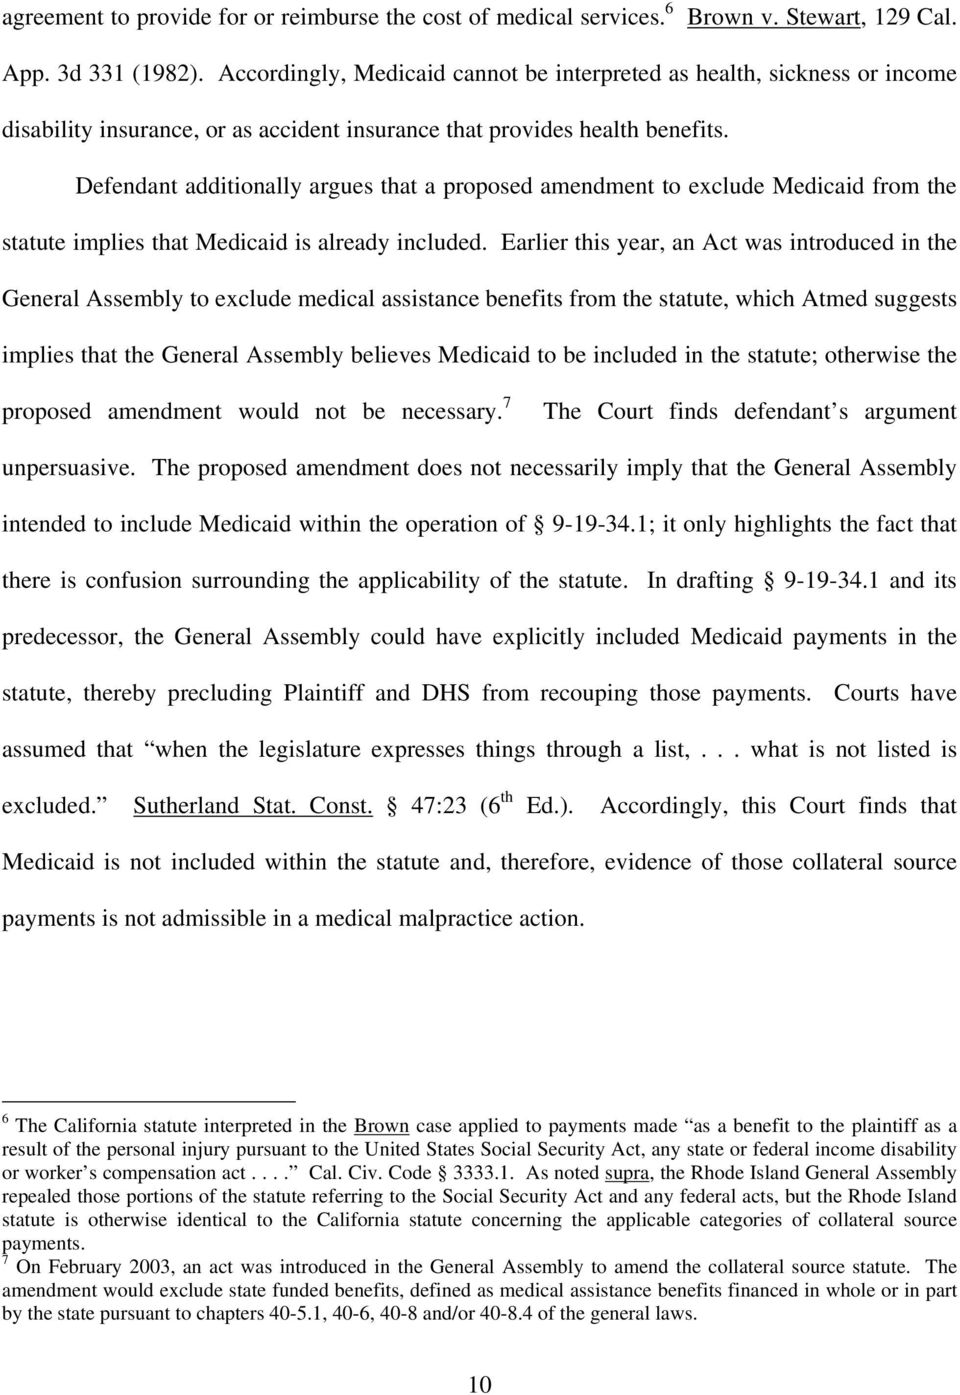 Defendant additionally argues that a proposed amendment to exclude Medicaid from the statute implies that Medicaid is already included.